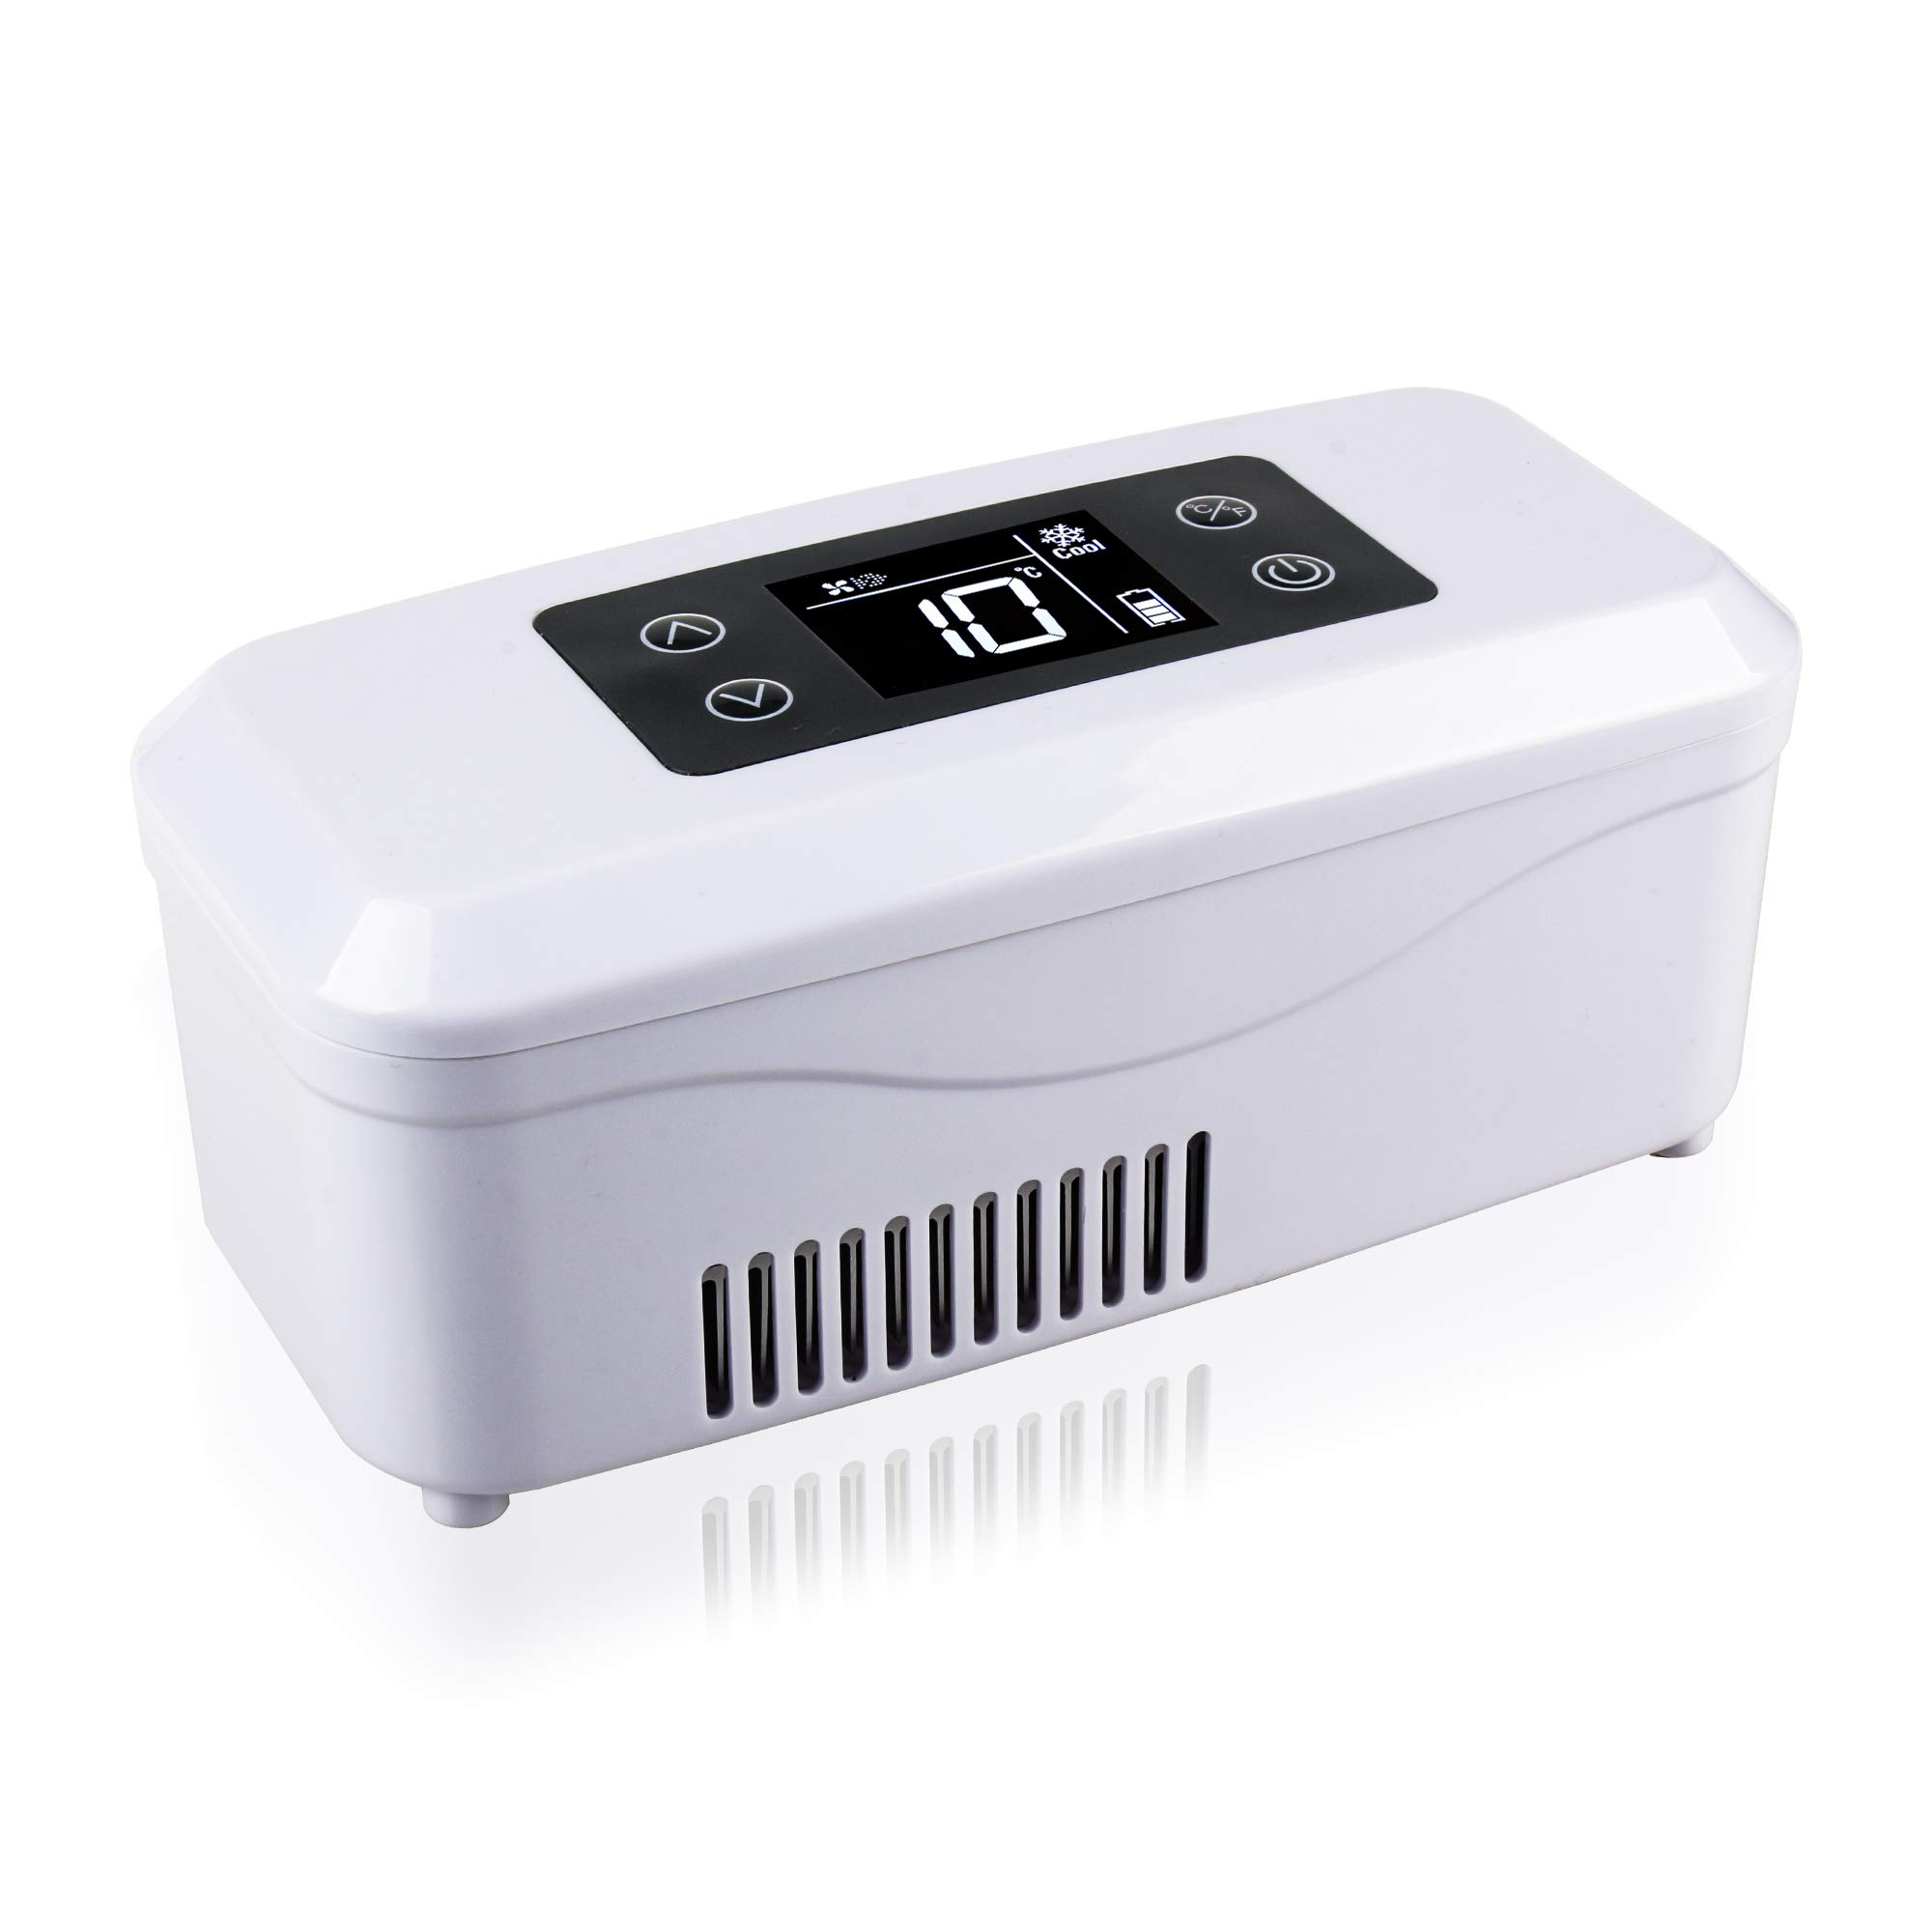 REAQER Portable Insulin Cooler Case 2-18°C Drug Refrigerated Reefer Box